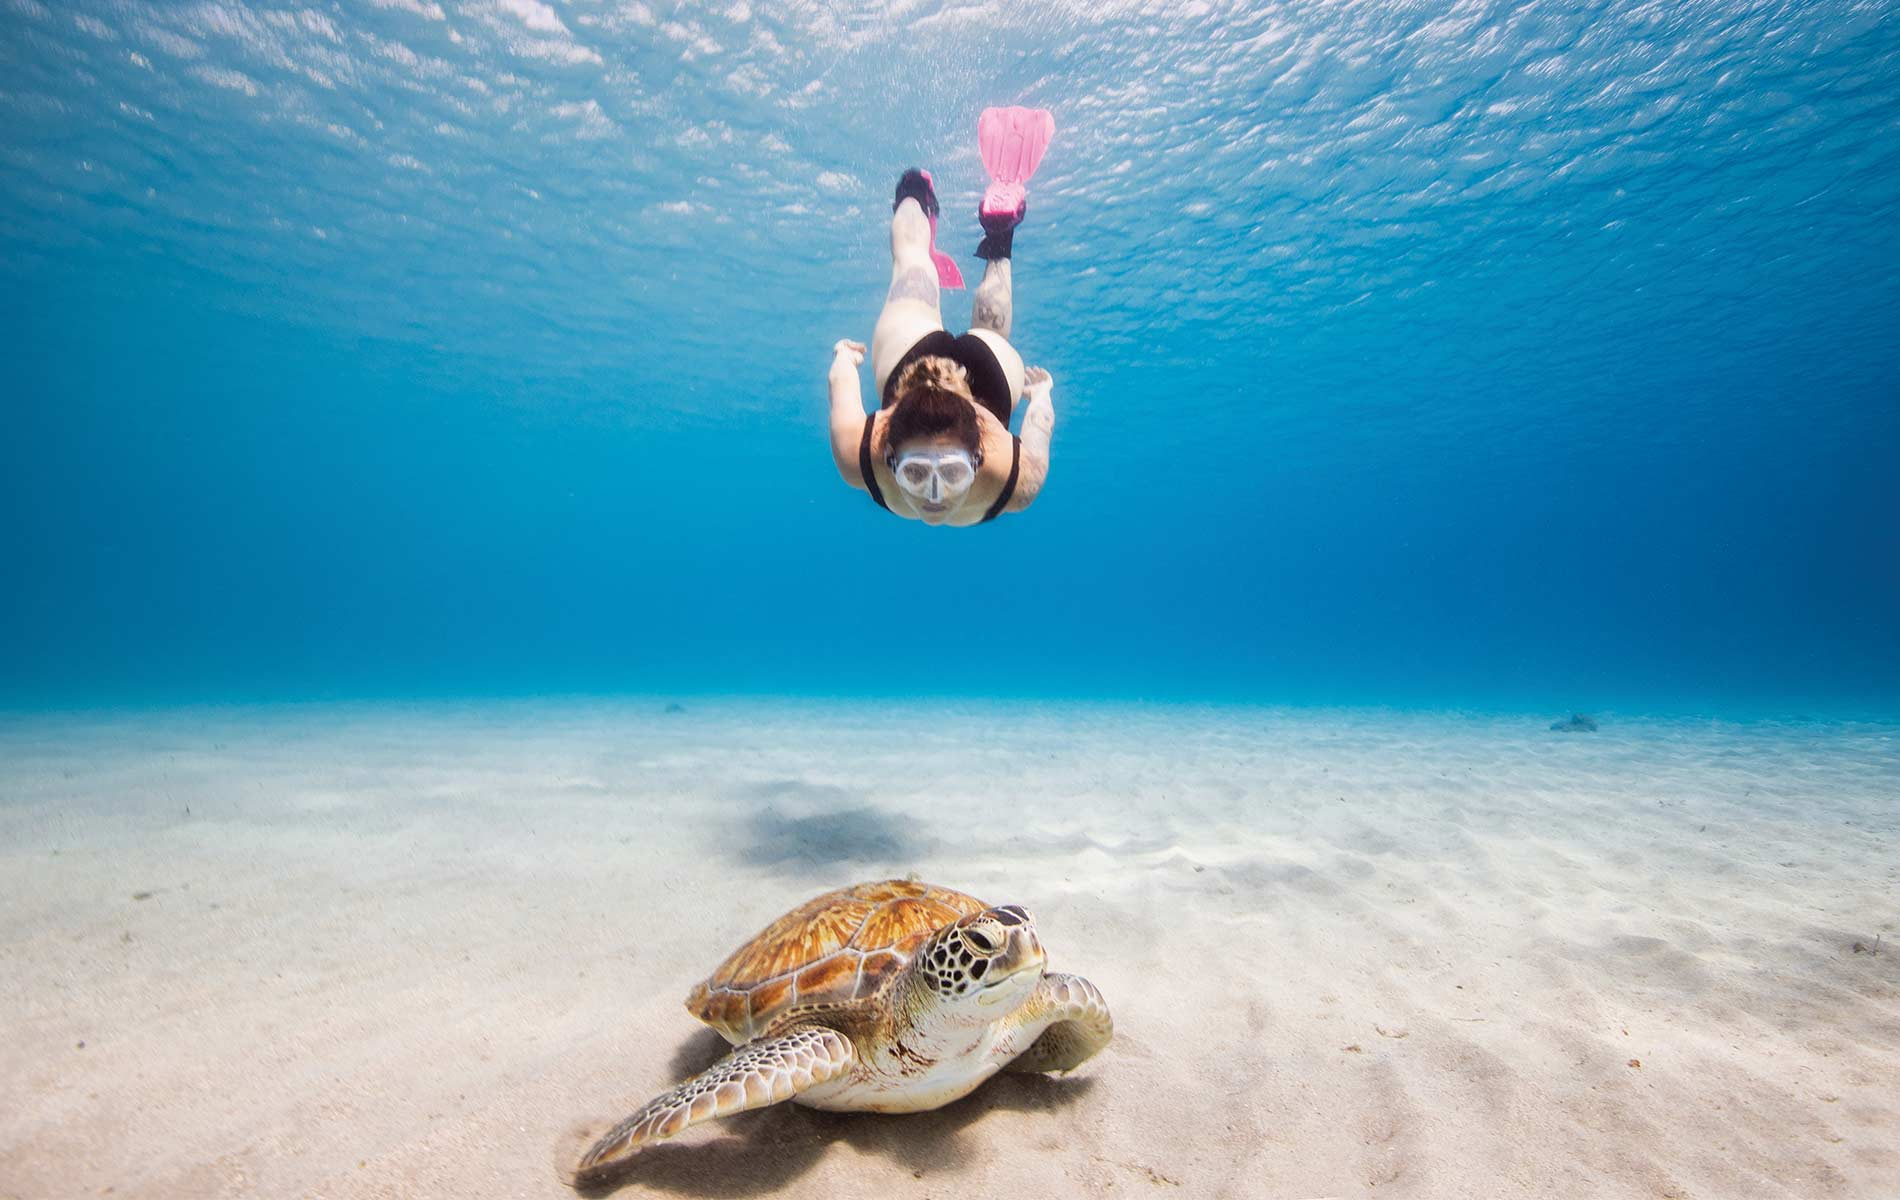 A snorkeler swims with a green sea turtle at Playa Piscado off the northwest point of Curaçao